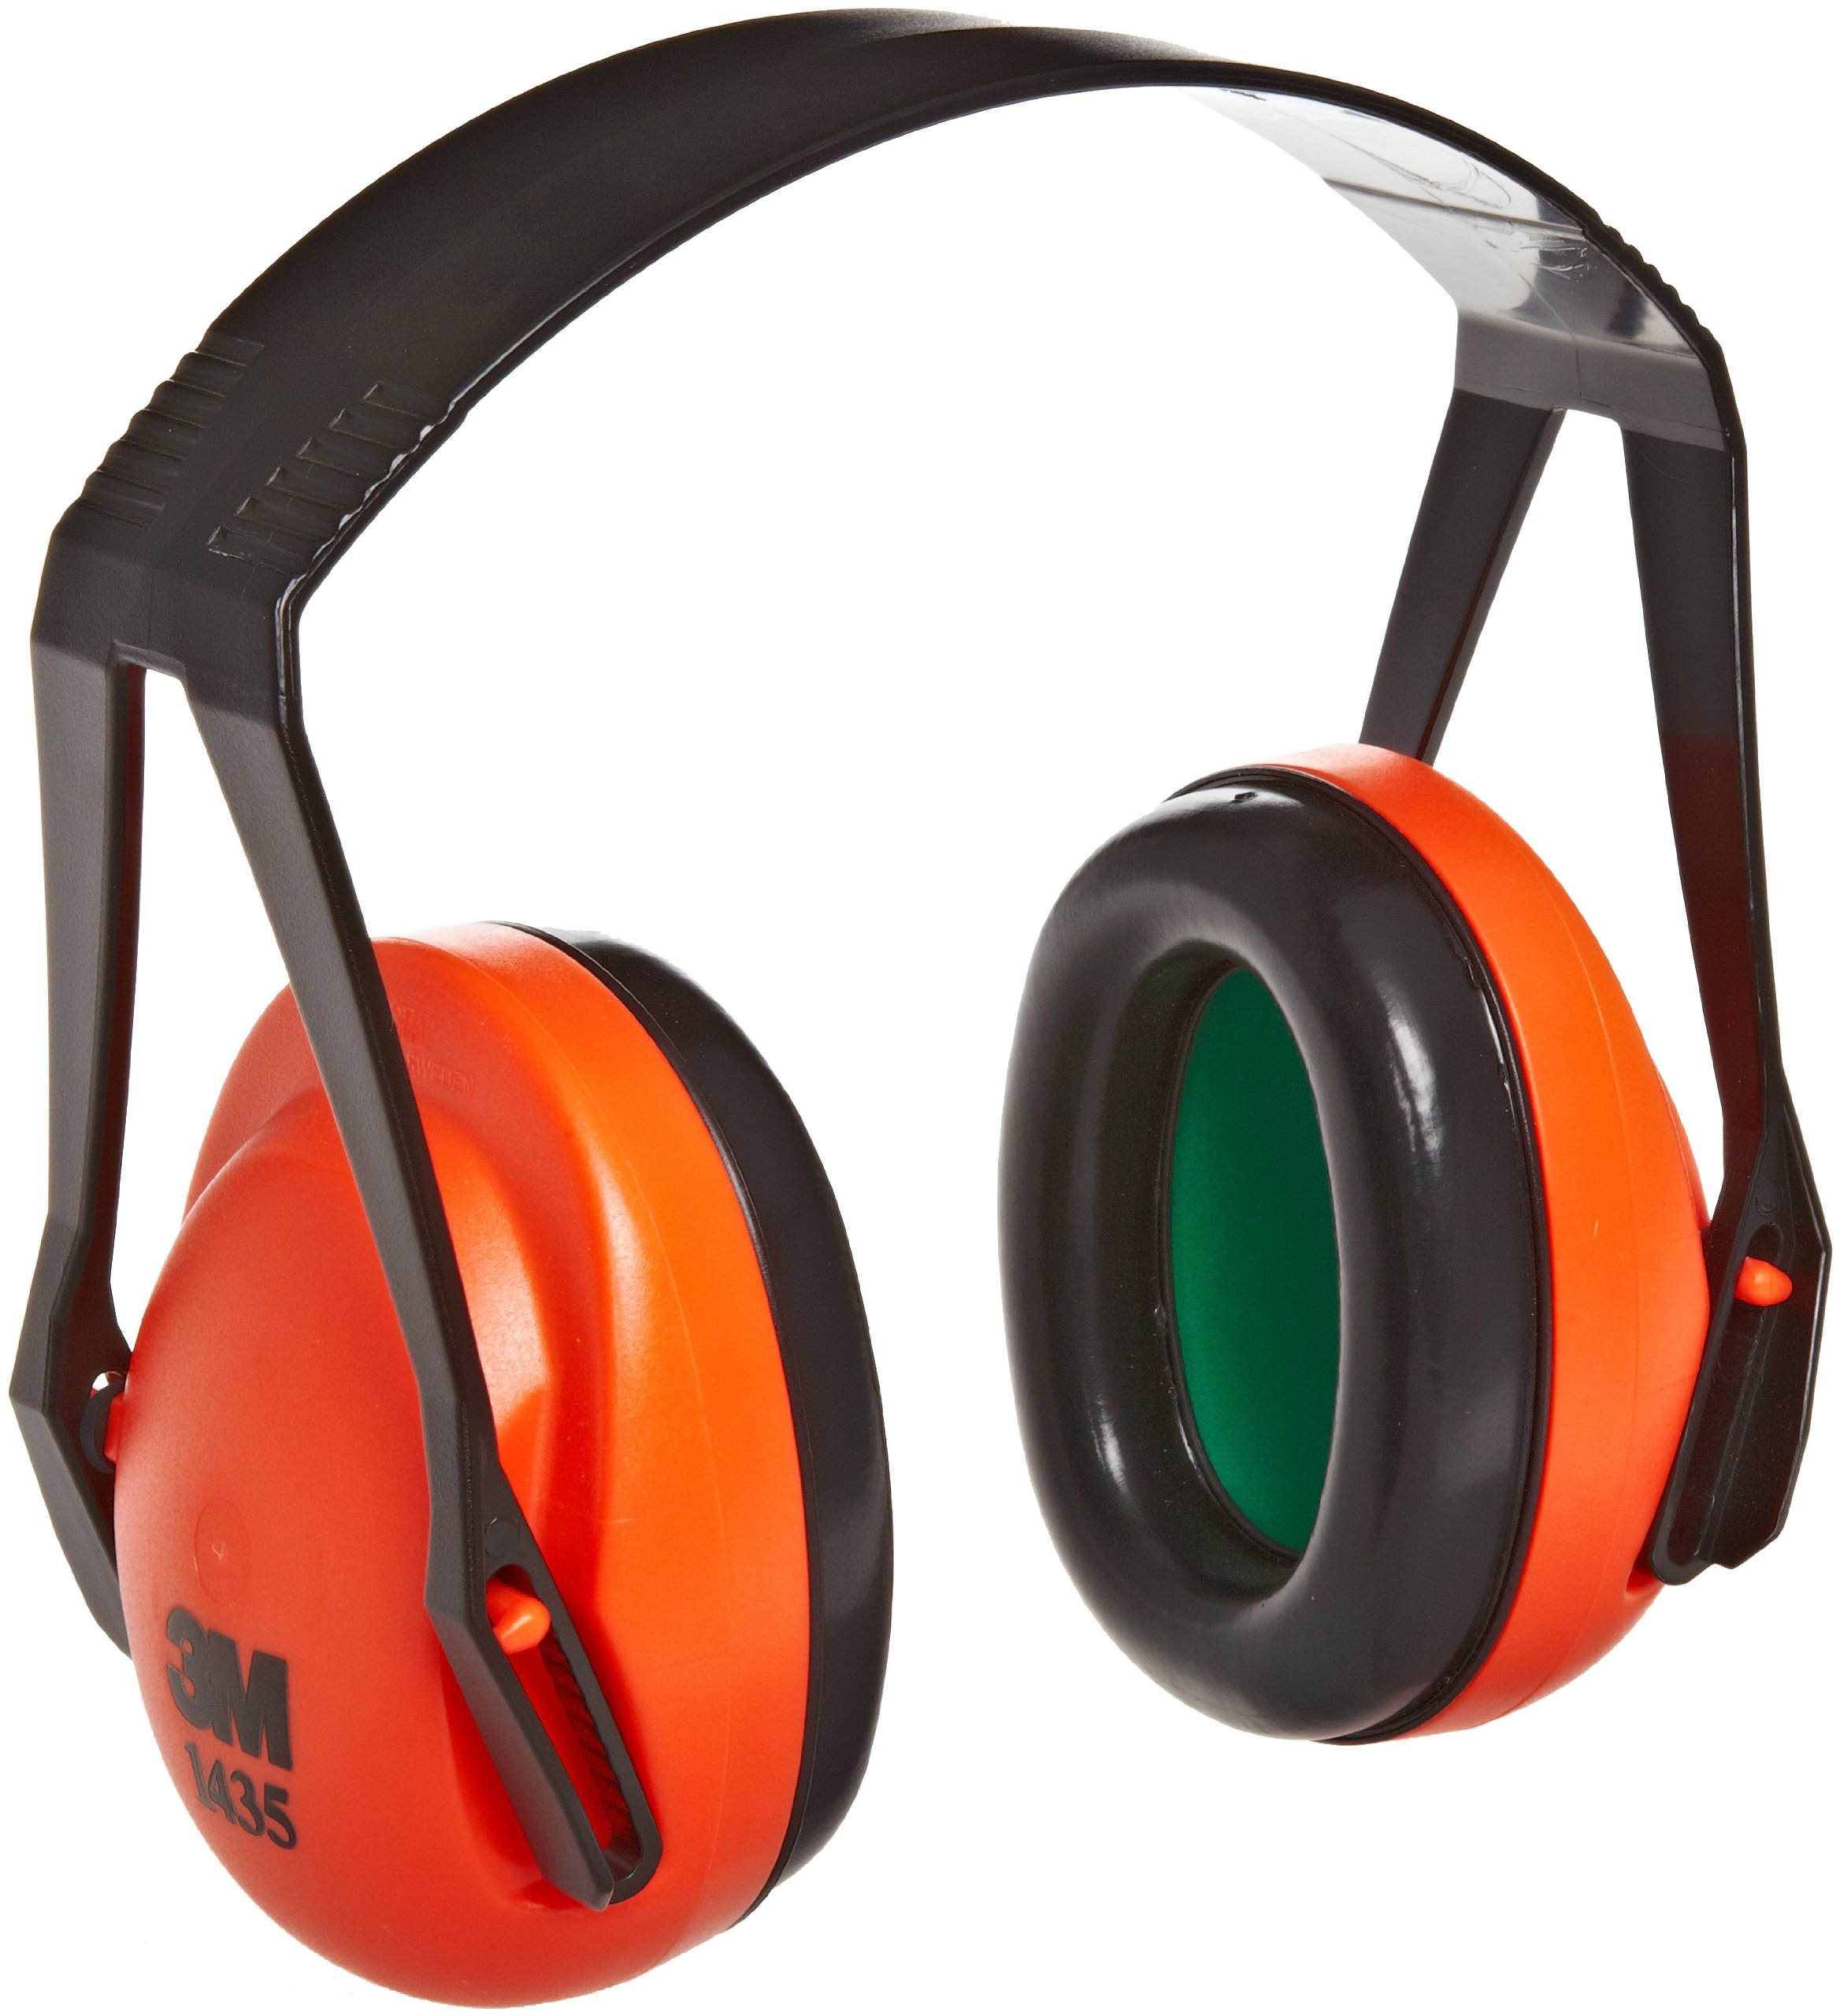 3M 1435 Gen Purpose Ear Muff, Lightweight Ear Cup withComfortable Headband,23dB NRR